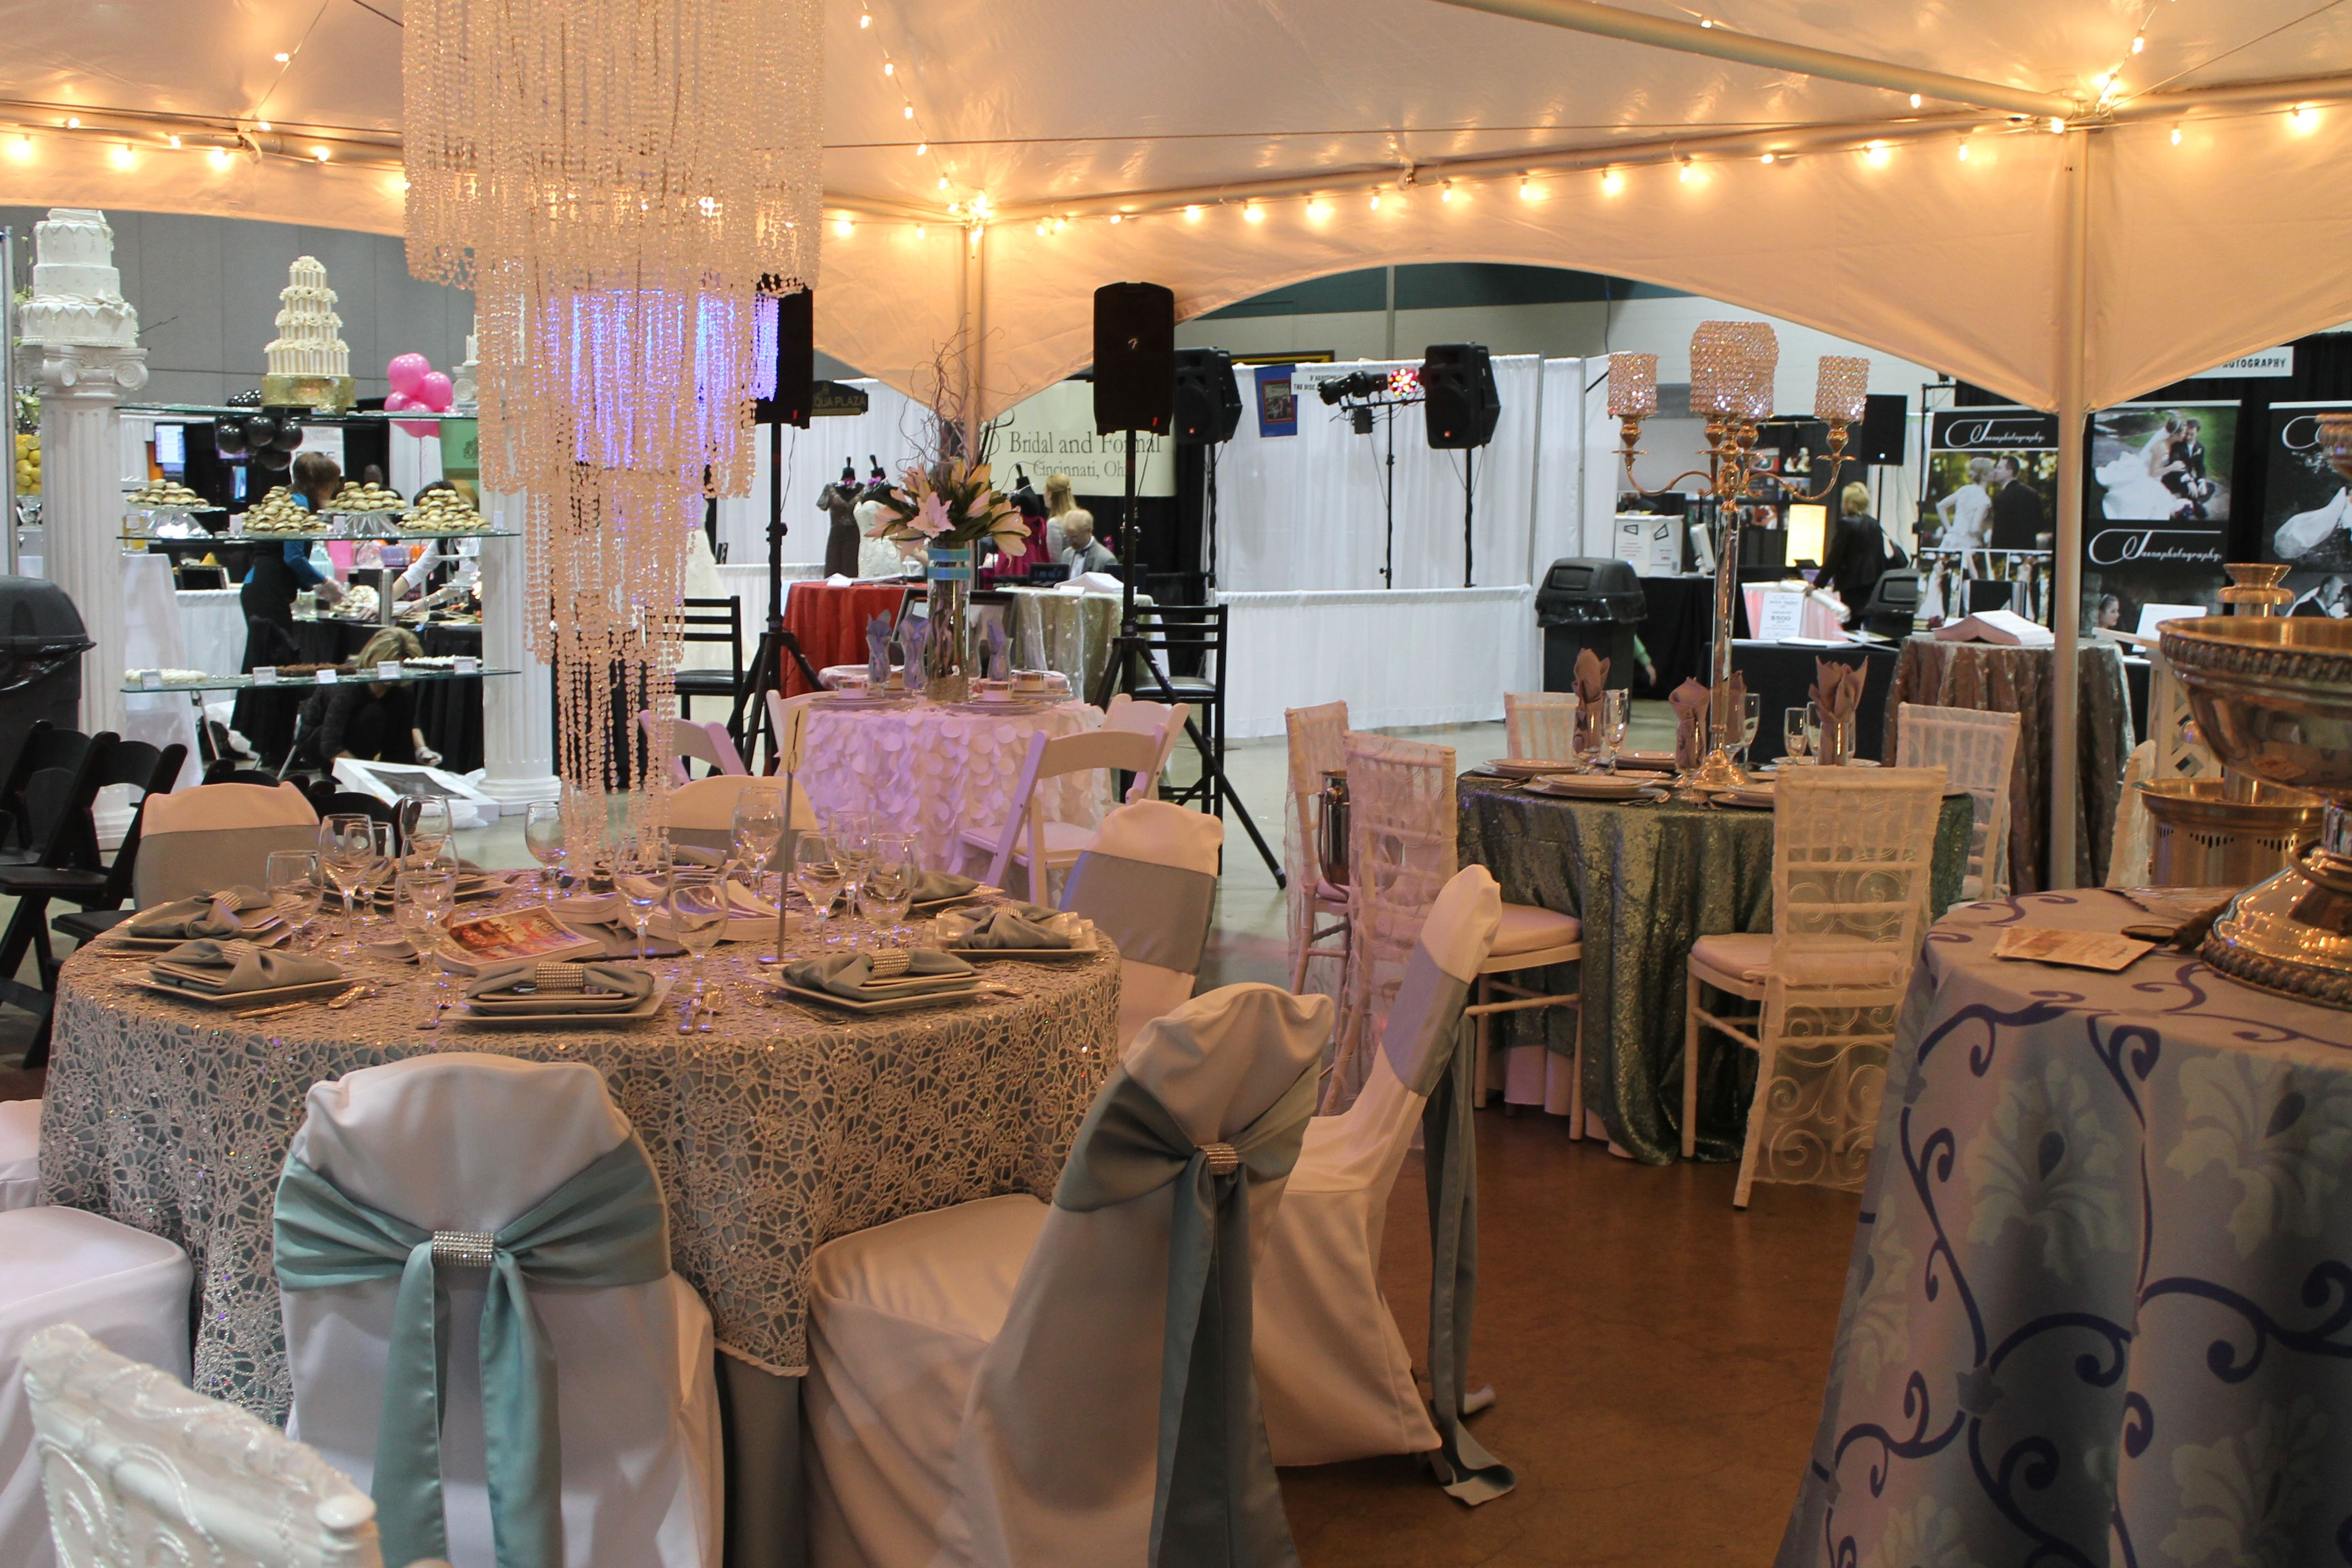 Wedding Expo Booth Ideas: Wedding Expo Booth Layout For Party Rental Store